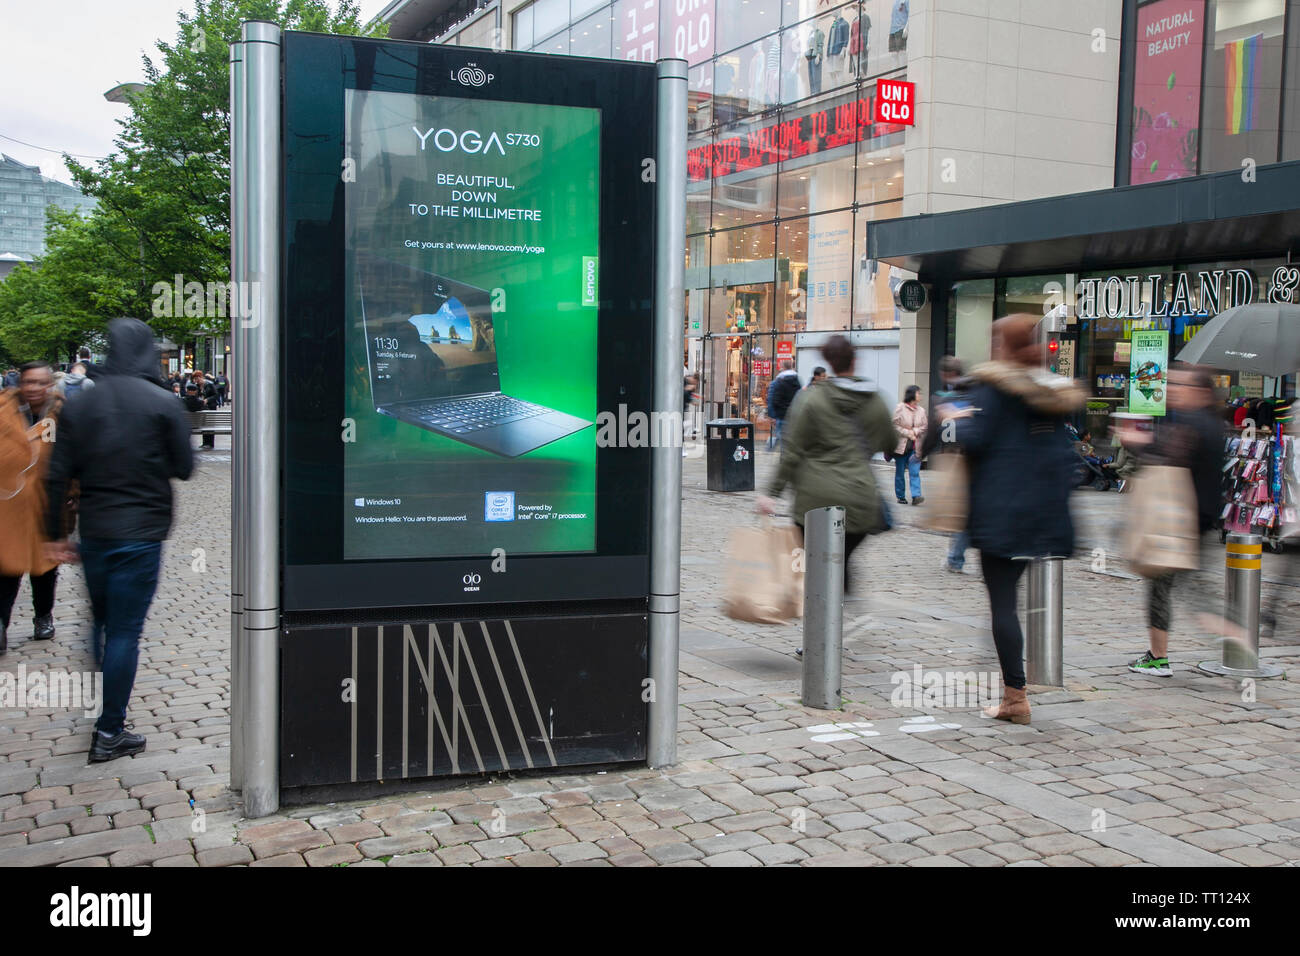 People passing Advertising sign for  Yoga S730 Shops, shoppers, retail business district, Piccadilly, Manchester city centre, UK - Stock Image